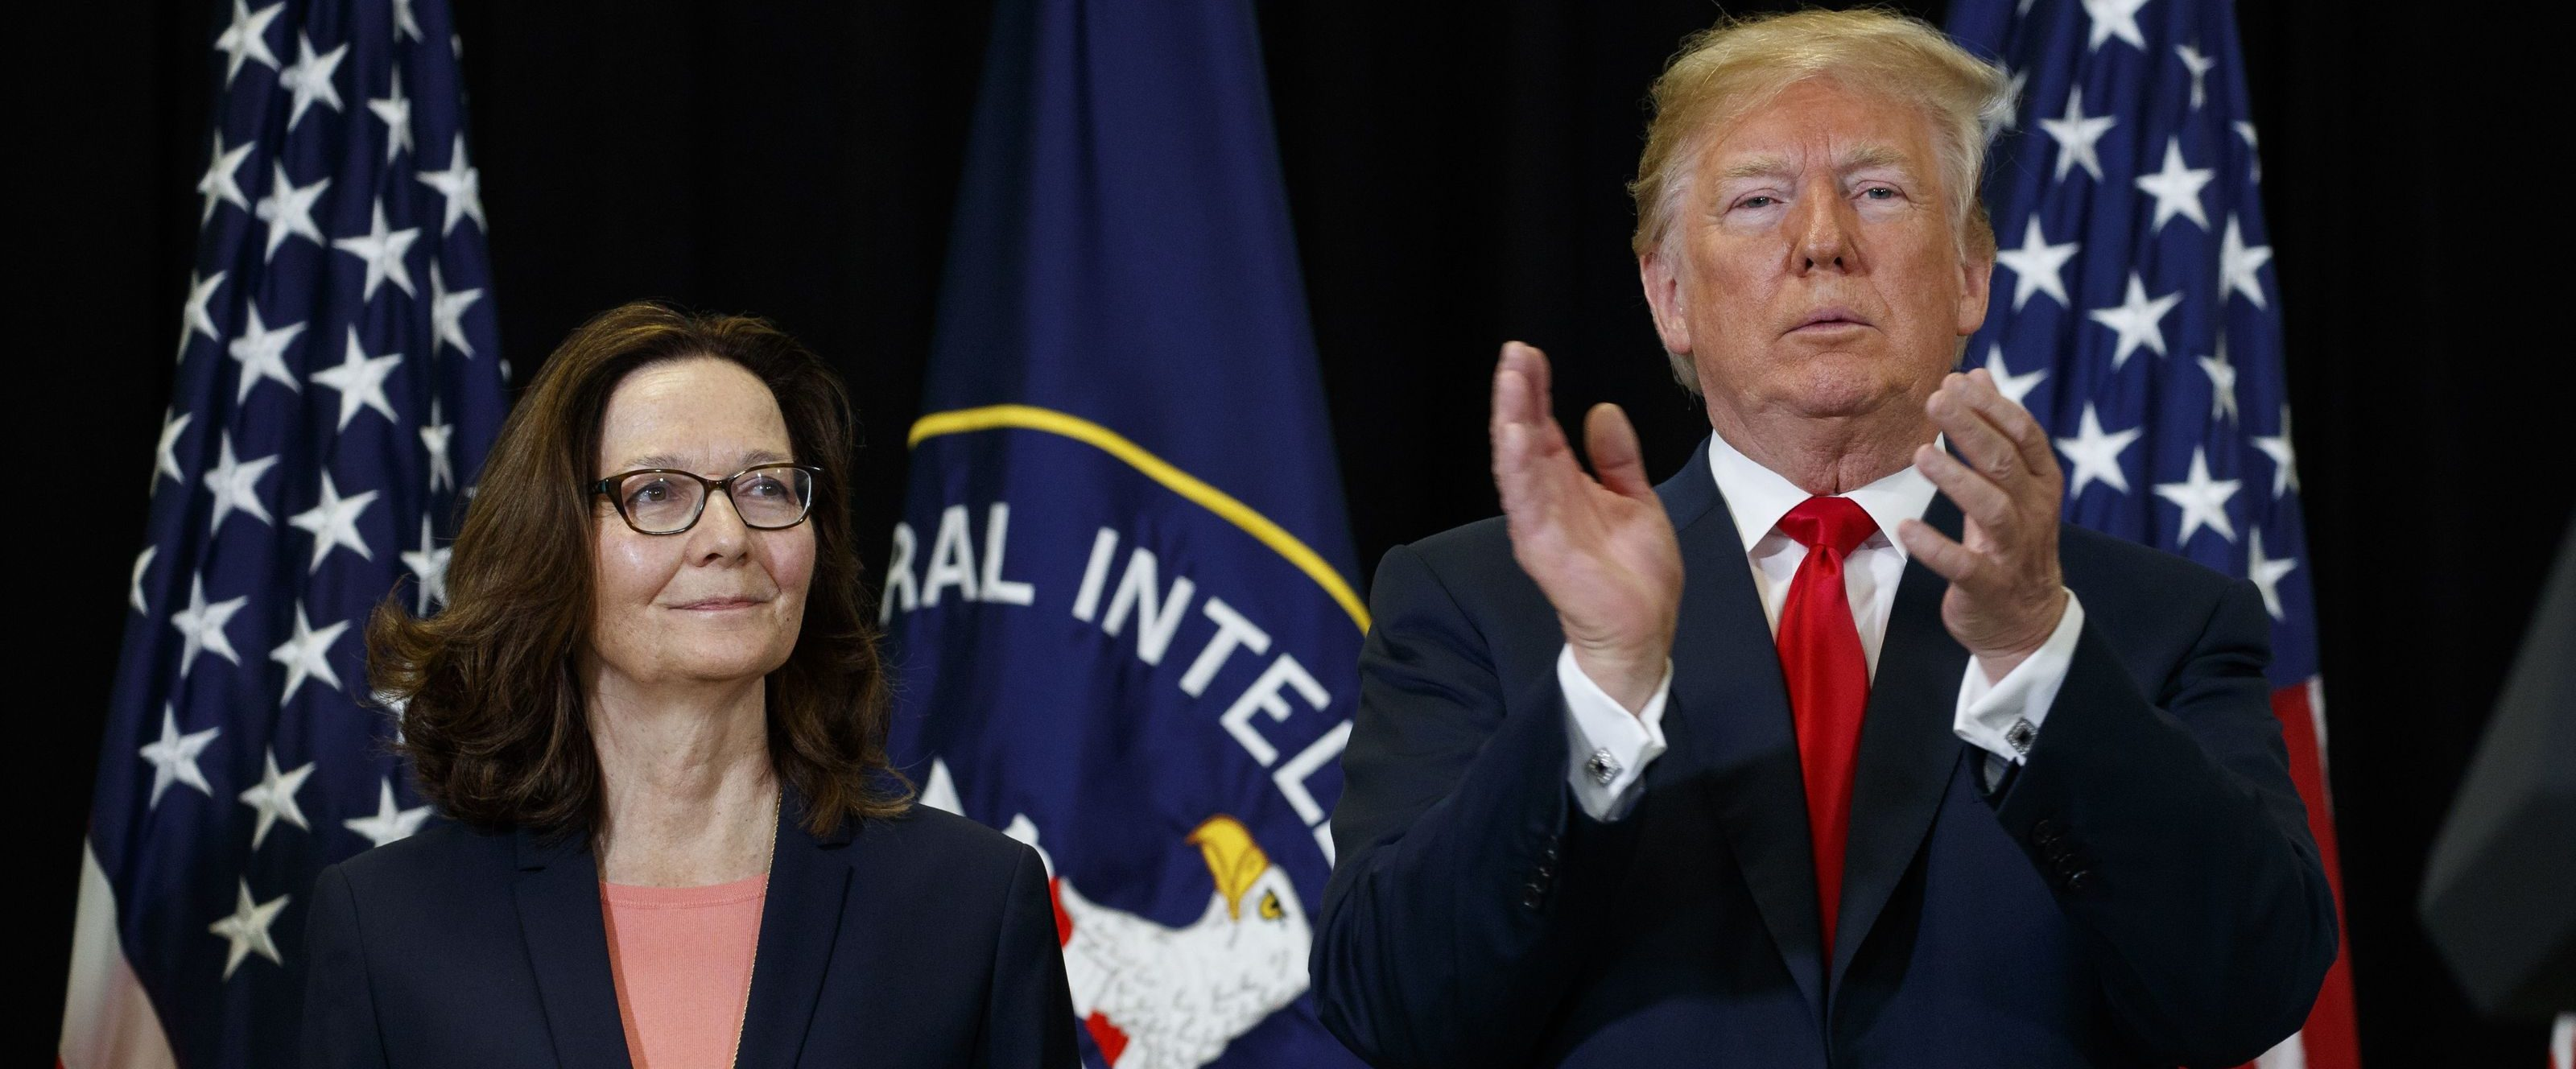 Then-CIA director Gina Haspel Said the US Was 'On the Way to a Right-Wing Coup'